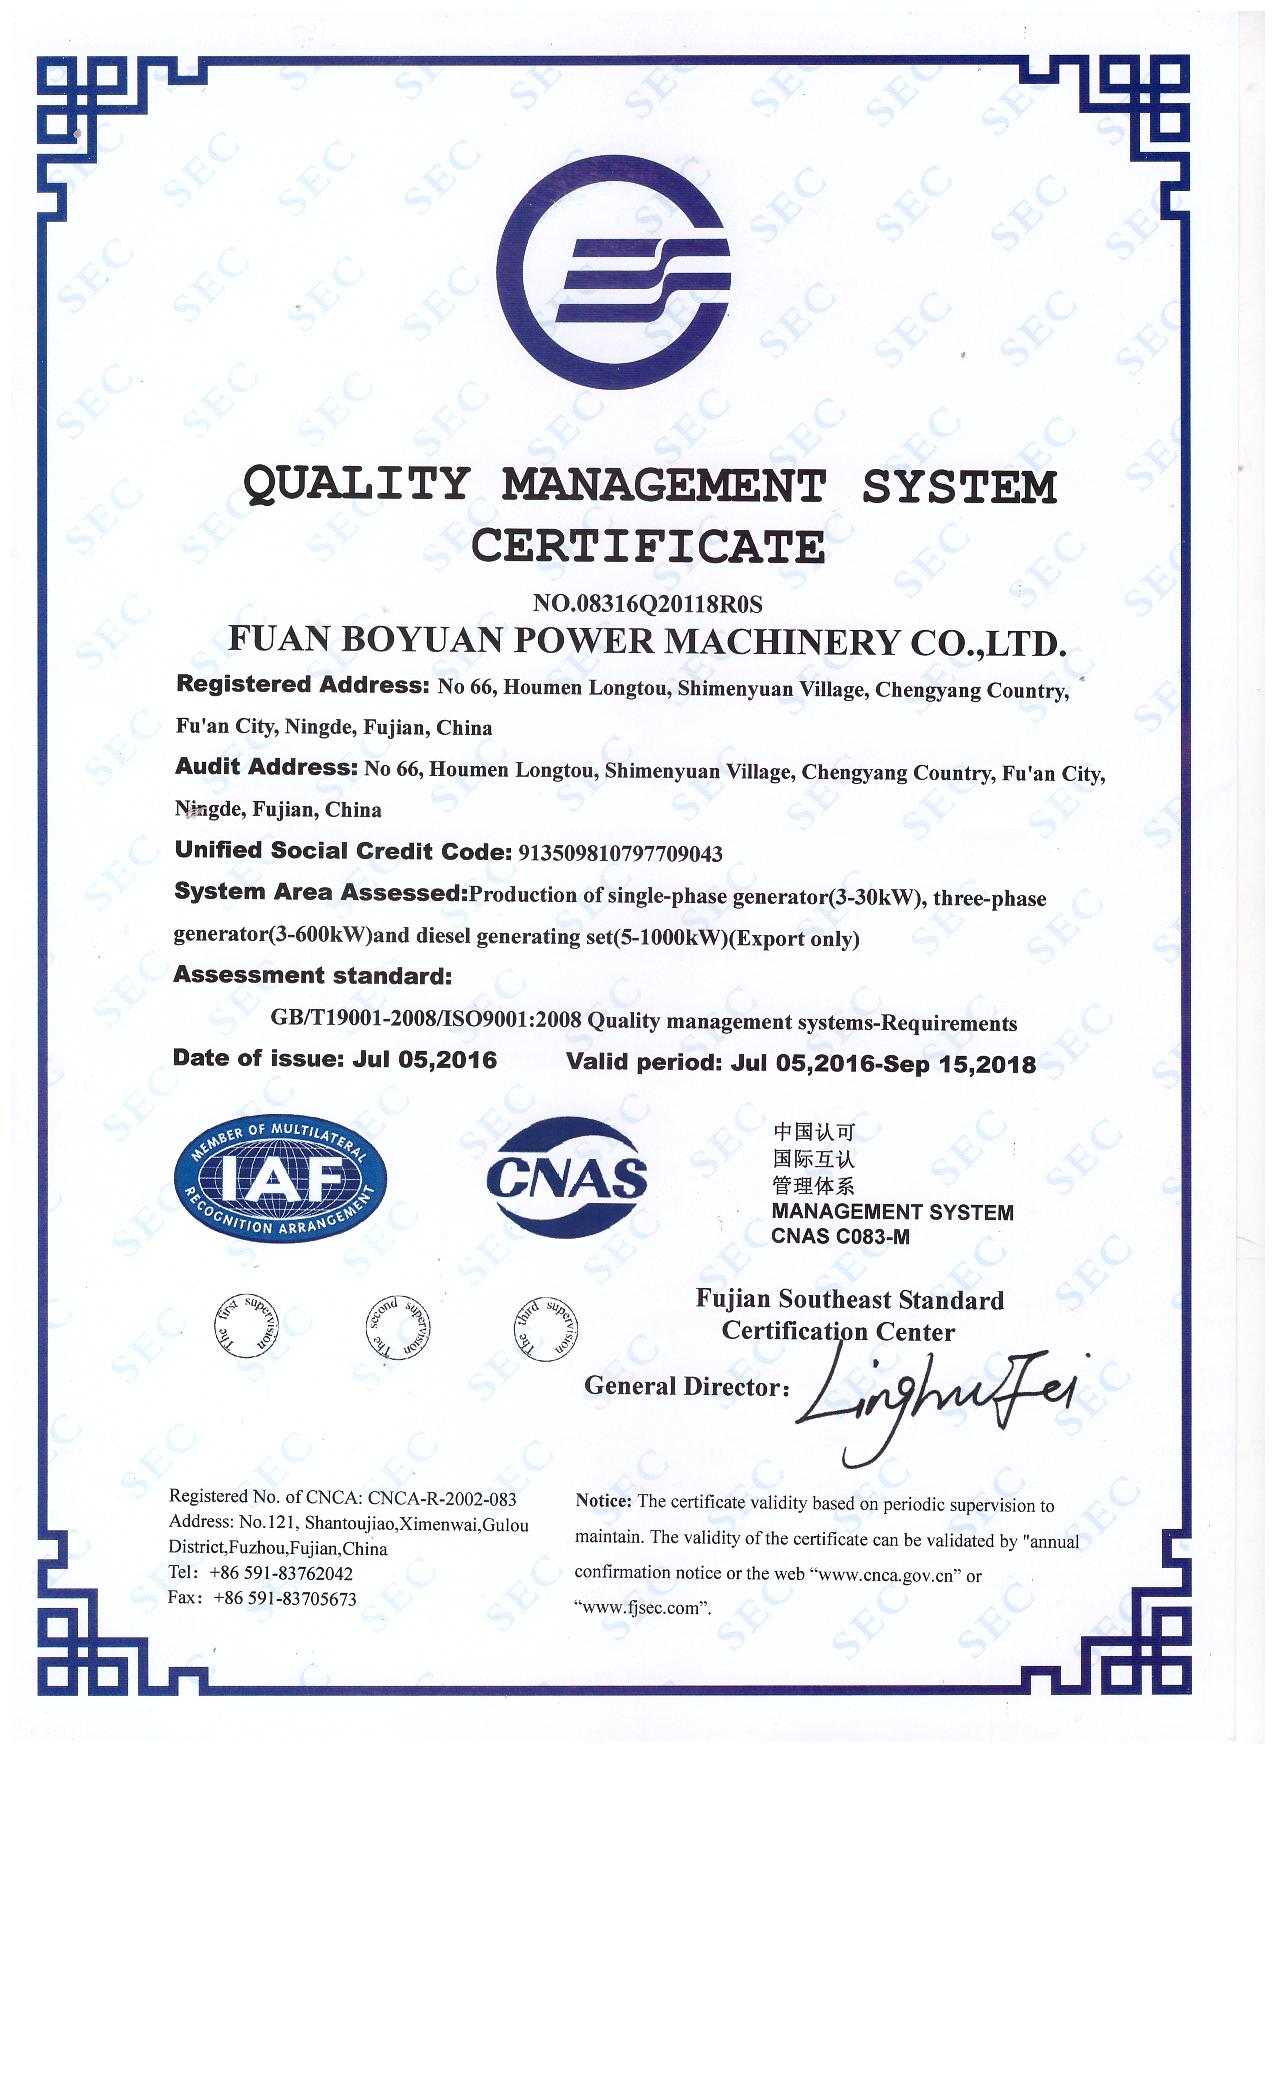 ISO 9001 quality control system certificate